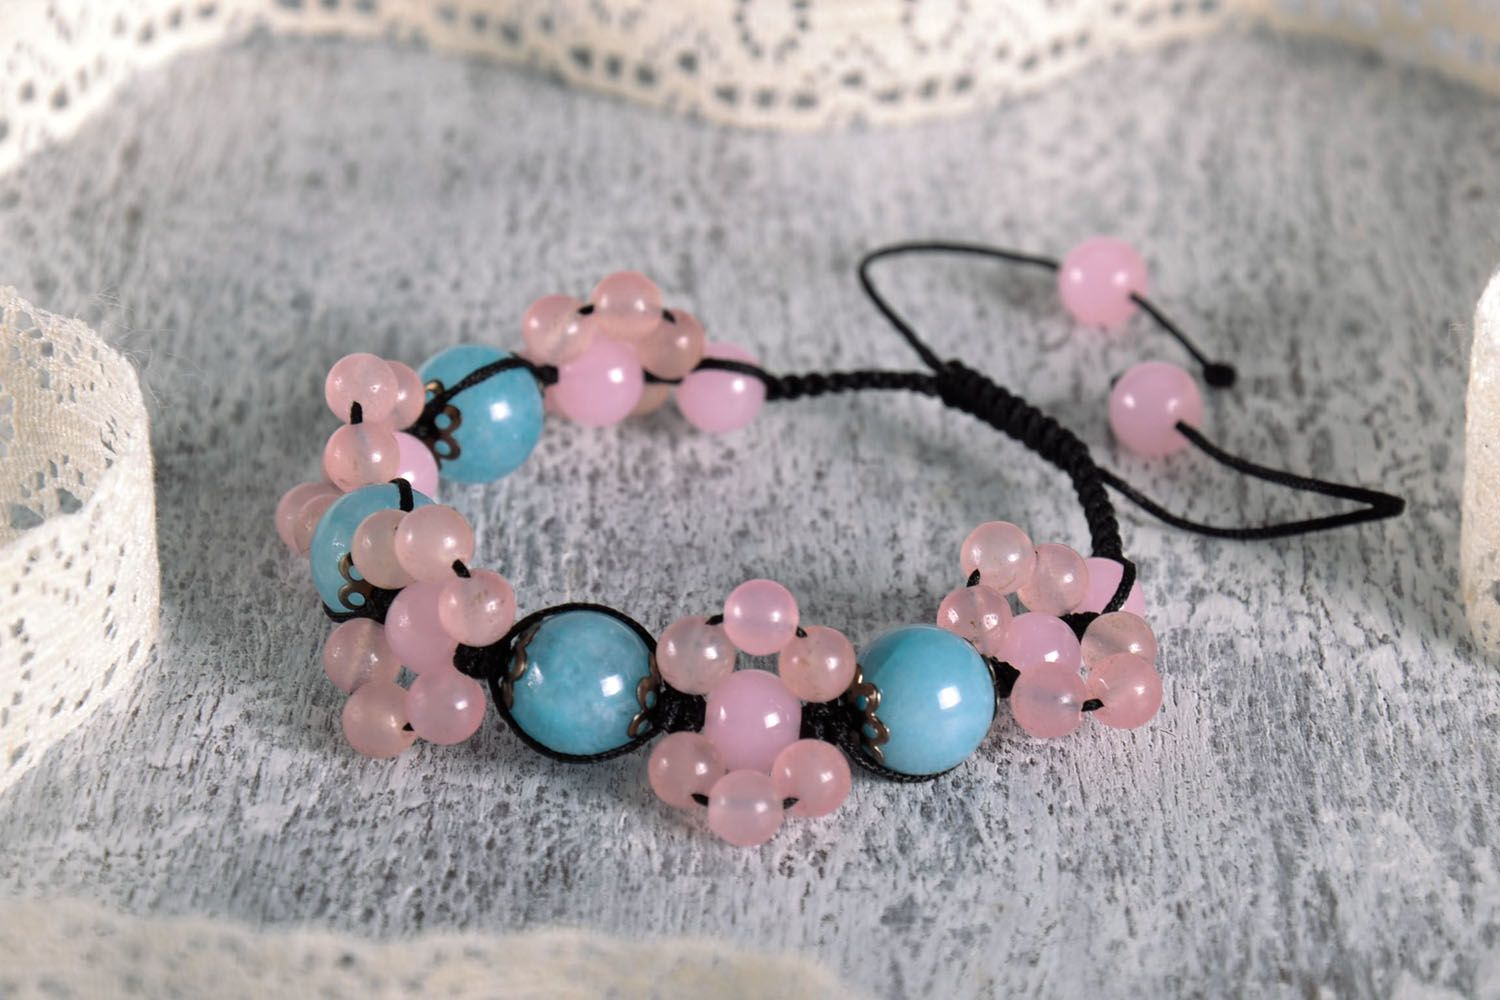 Homemade bracelet with natural stones photo 1